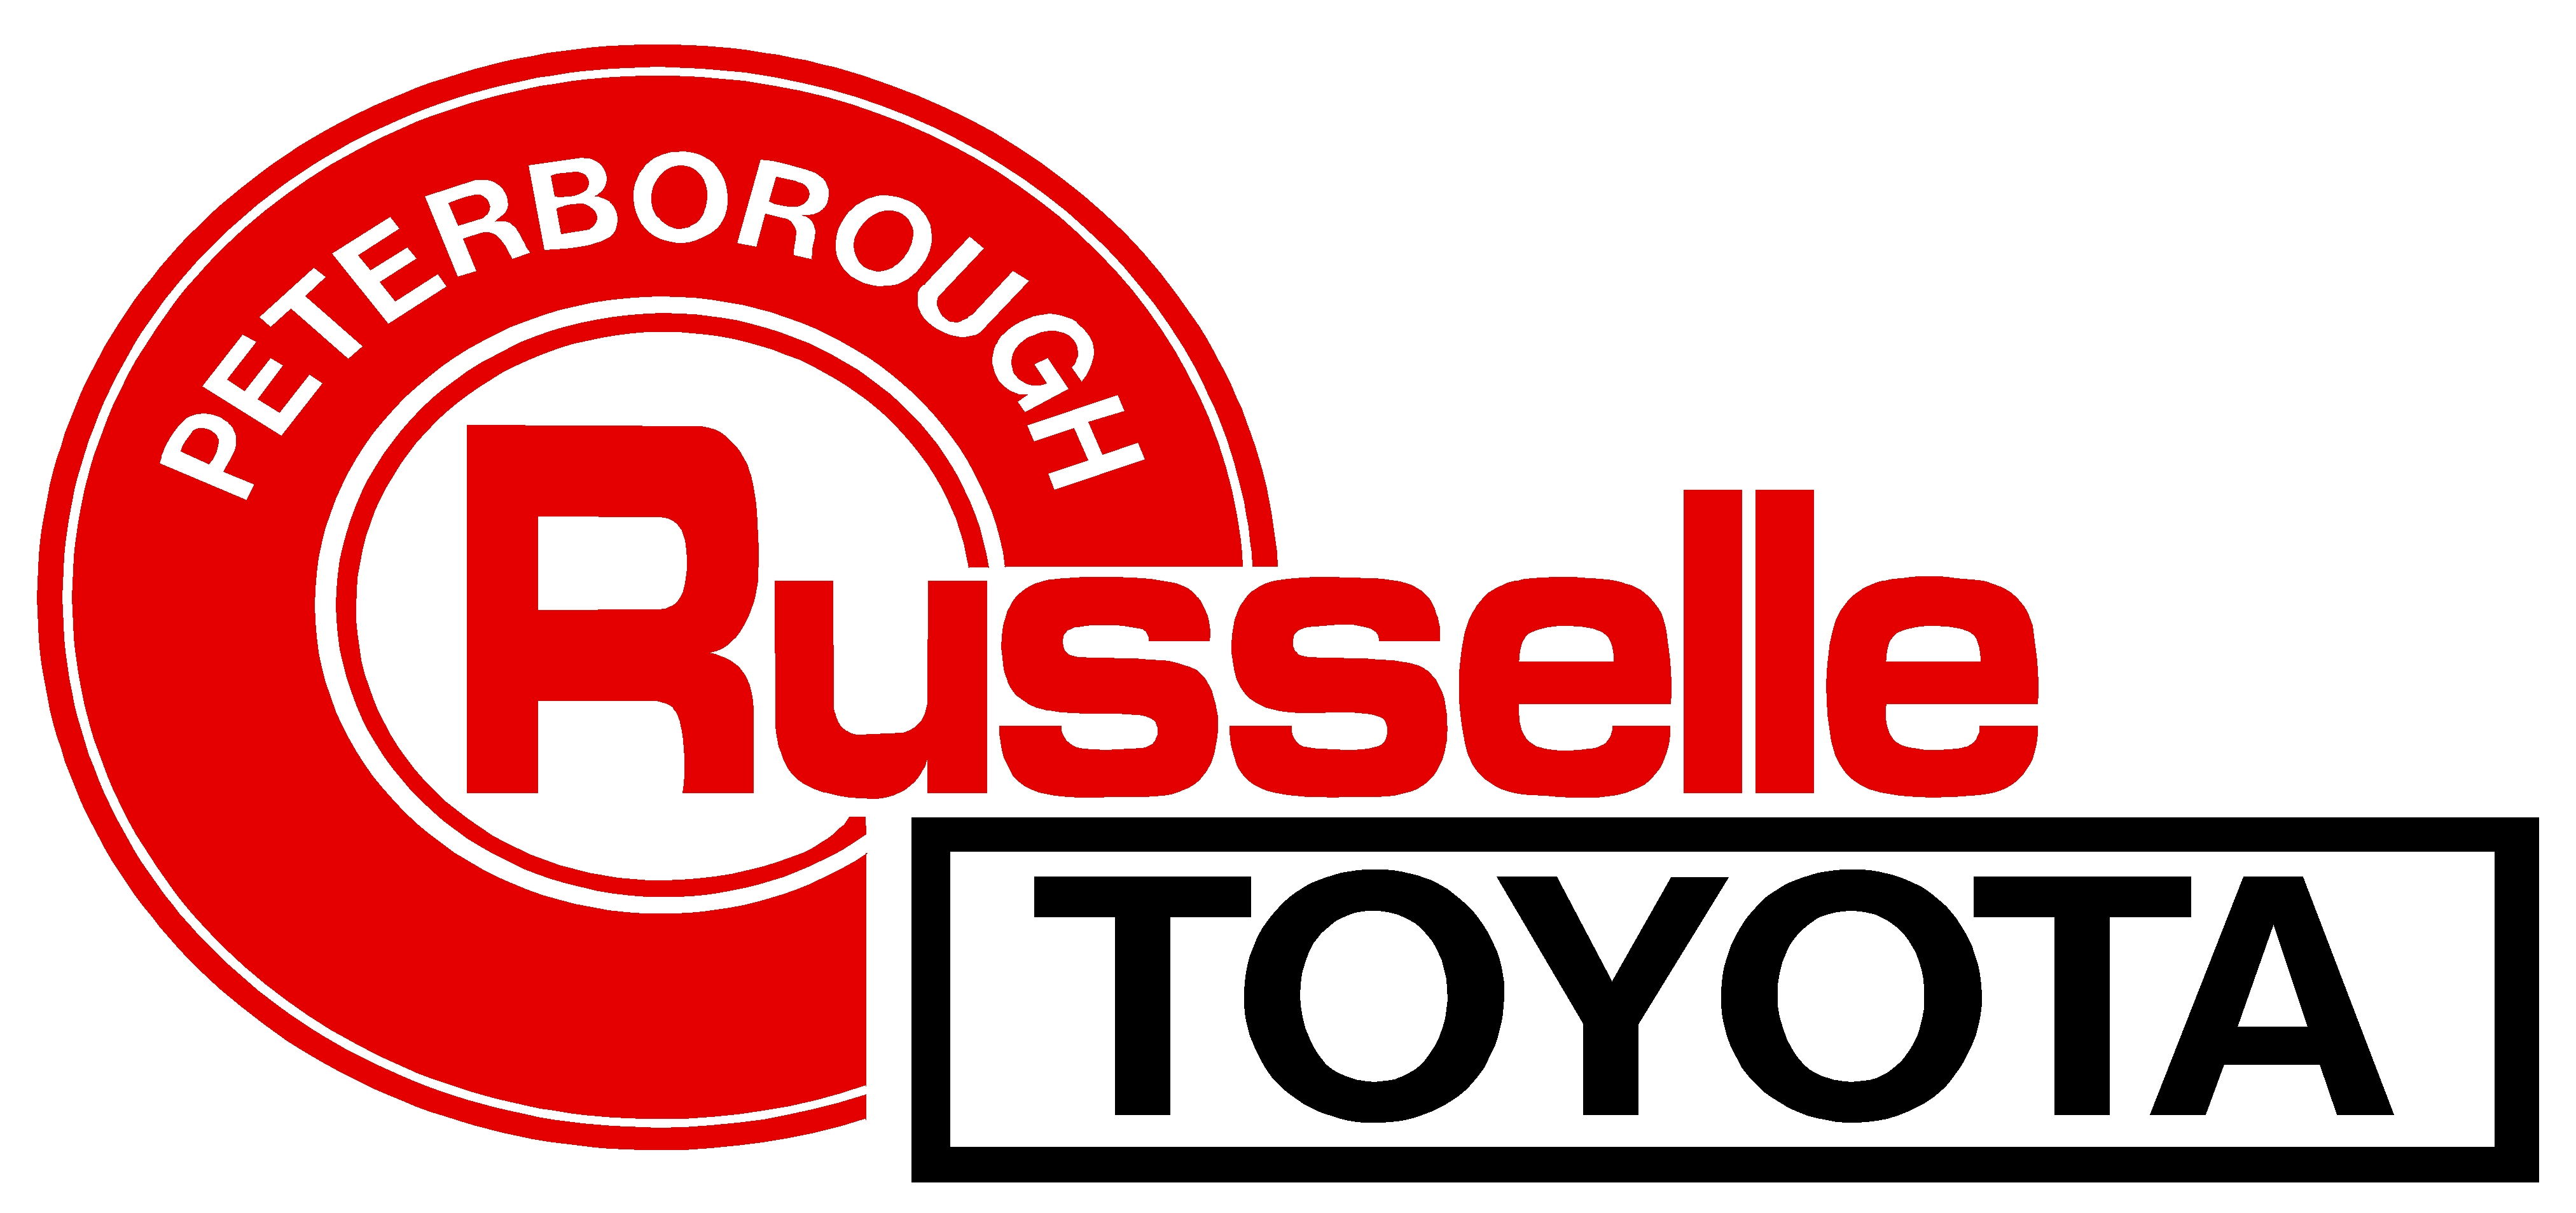 008 - Russell Toyota